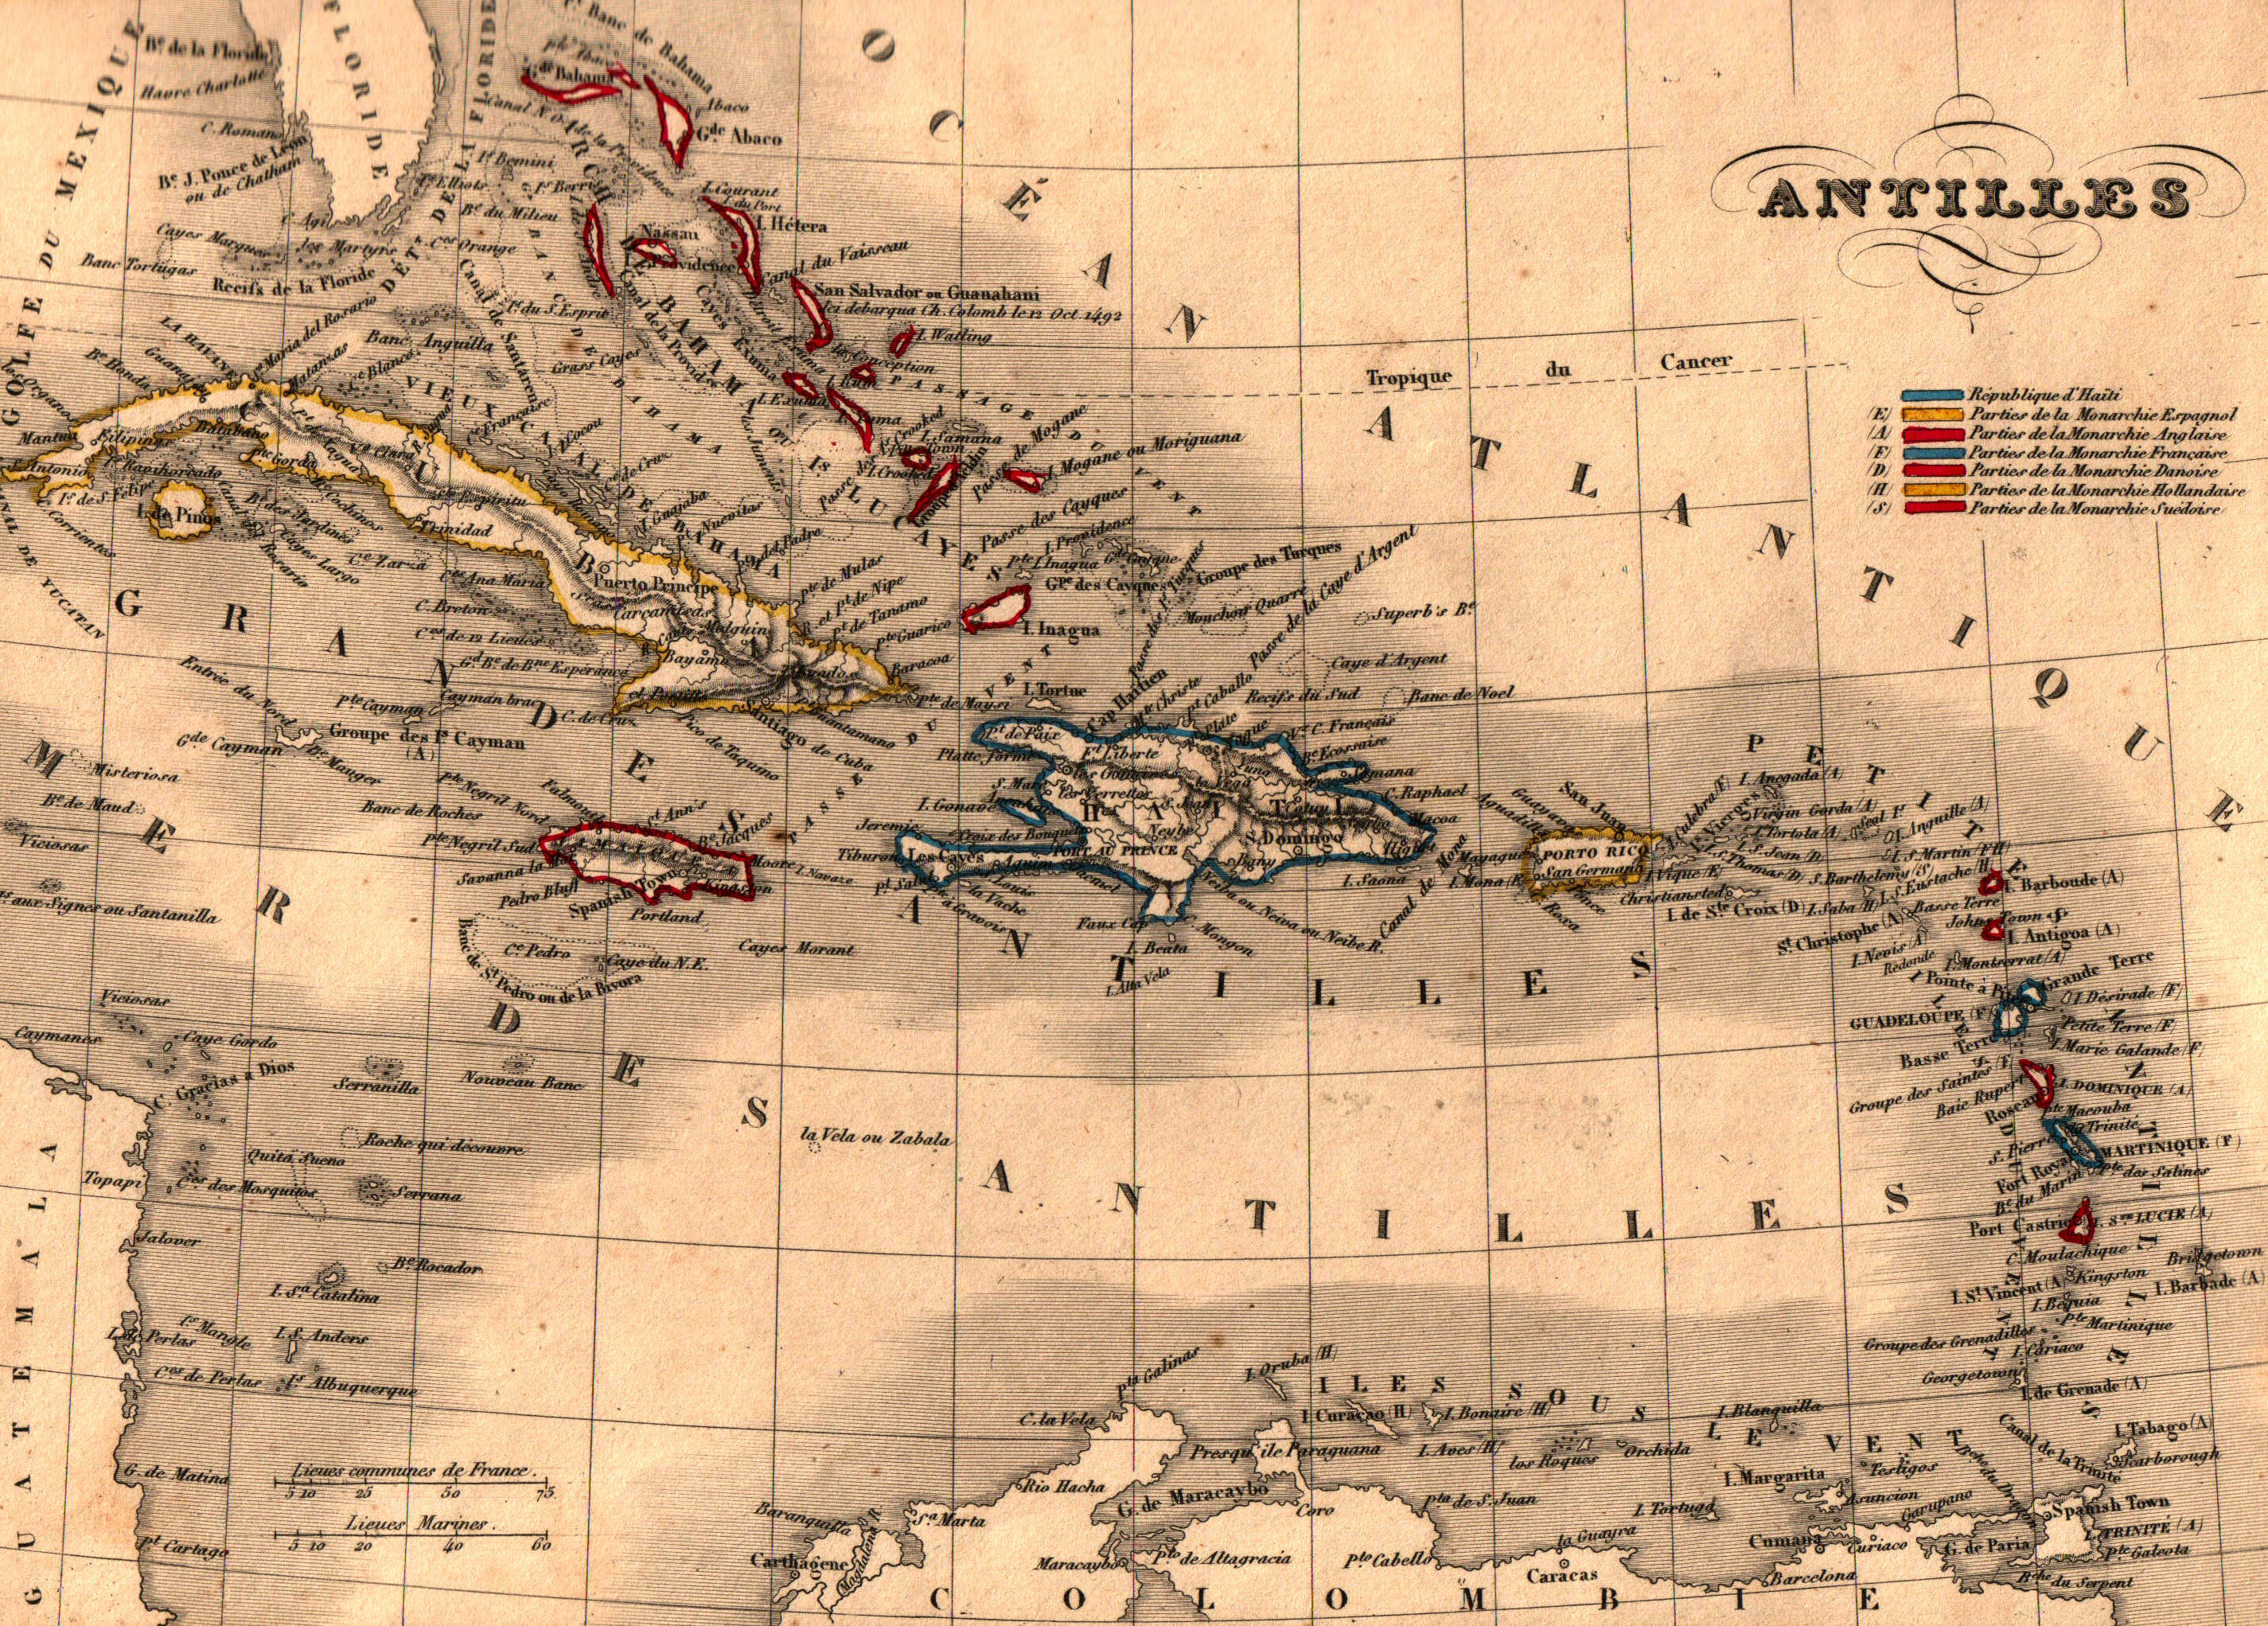 http://upload.wikimedia.org/wikipedia/commons/a/a4/Carte_antilles_1843.jpg